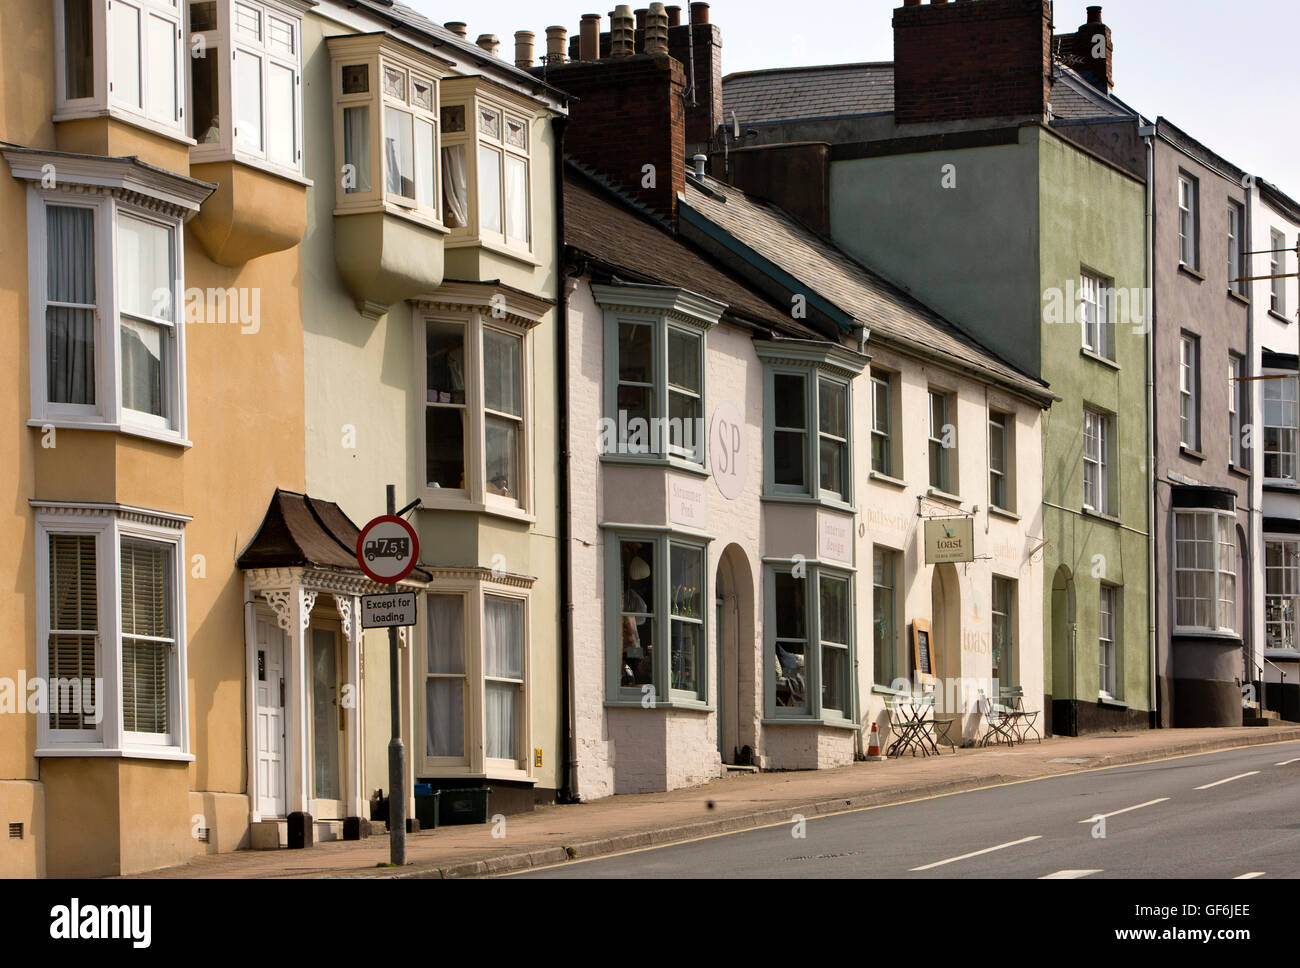 UK, England, Devon, Honiton, High Street, houses, shop and cafe outside town centre Stock Photo